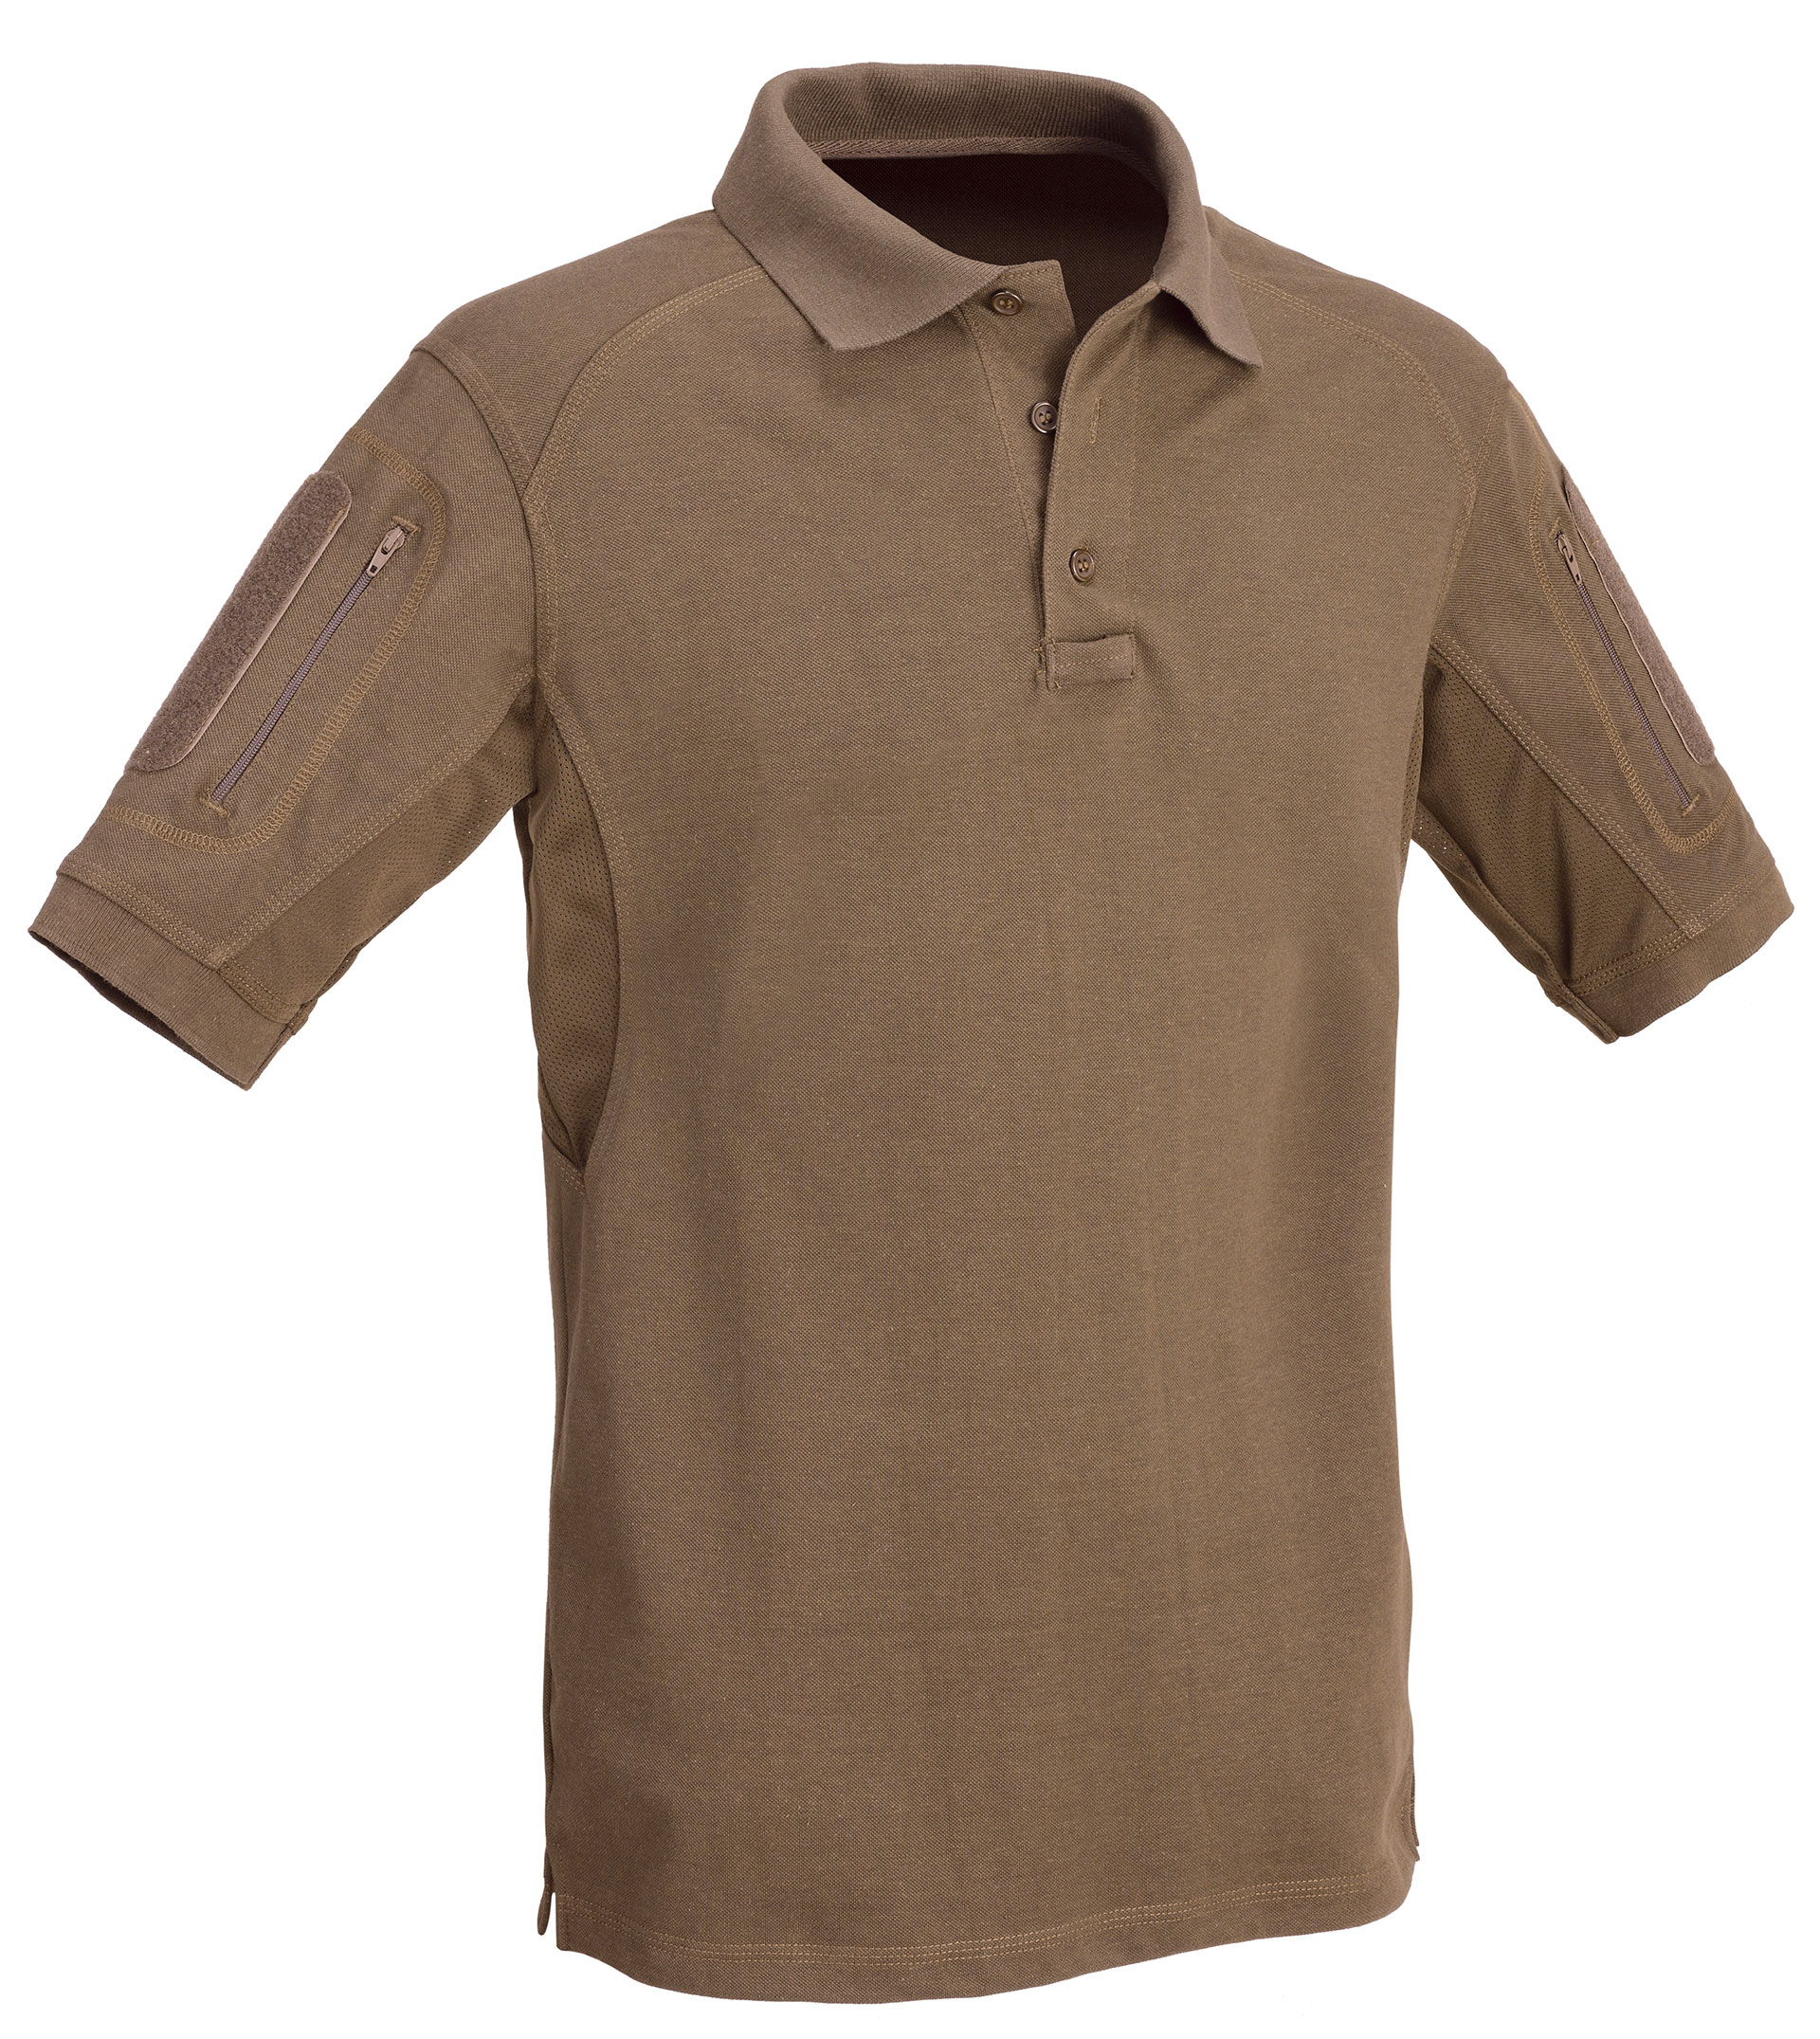 Defcon 5 Tactical Polo Short Sleeves With Pockets D5